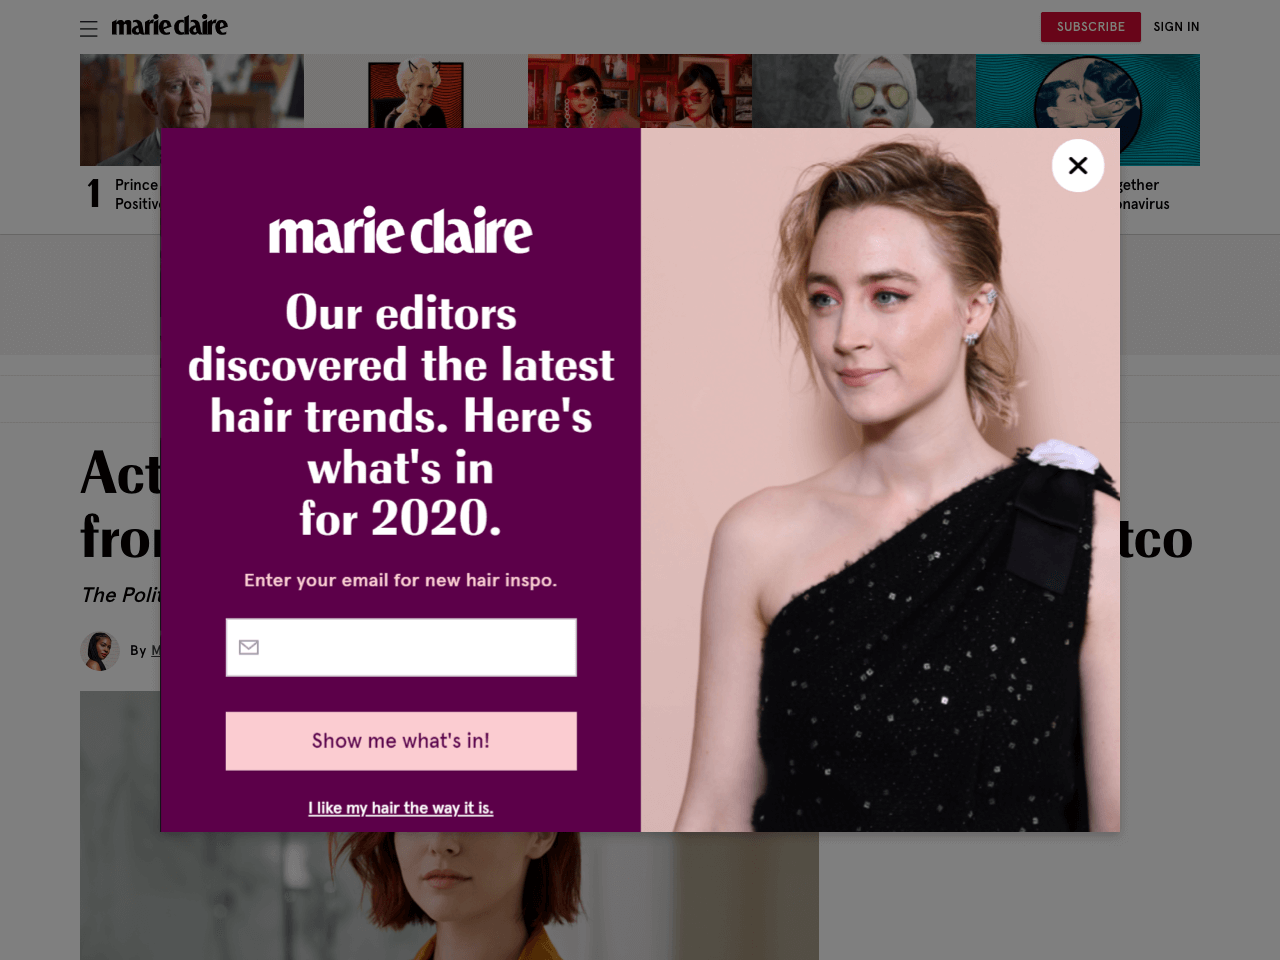 Marie Claire offers a lead magnet in exchange for subscription